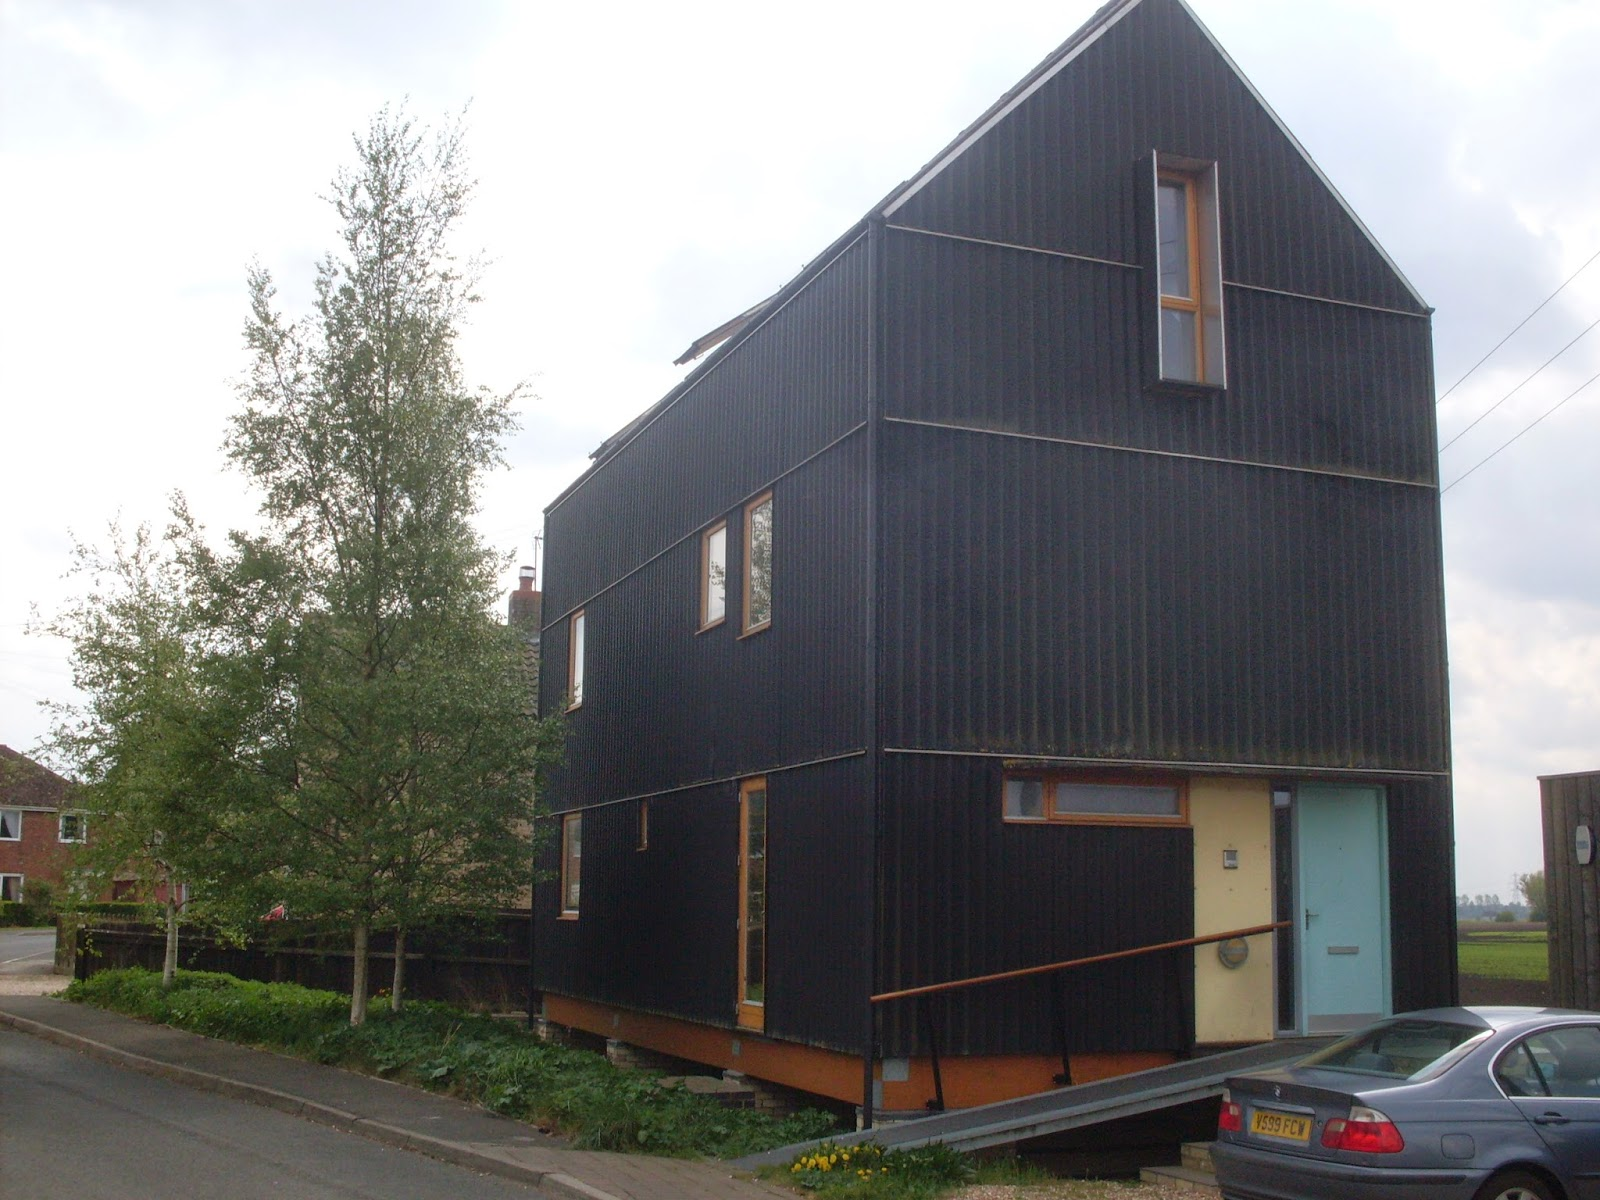 The Black House Is Another Award Winner And Just Down Road From These Two Was Designed By Meredith Bowles Founder Of Mole Architects